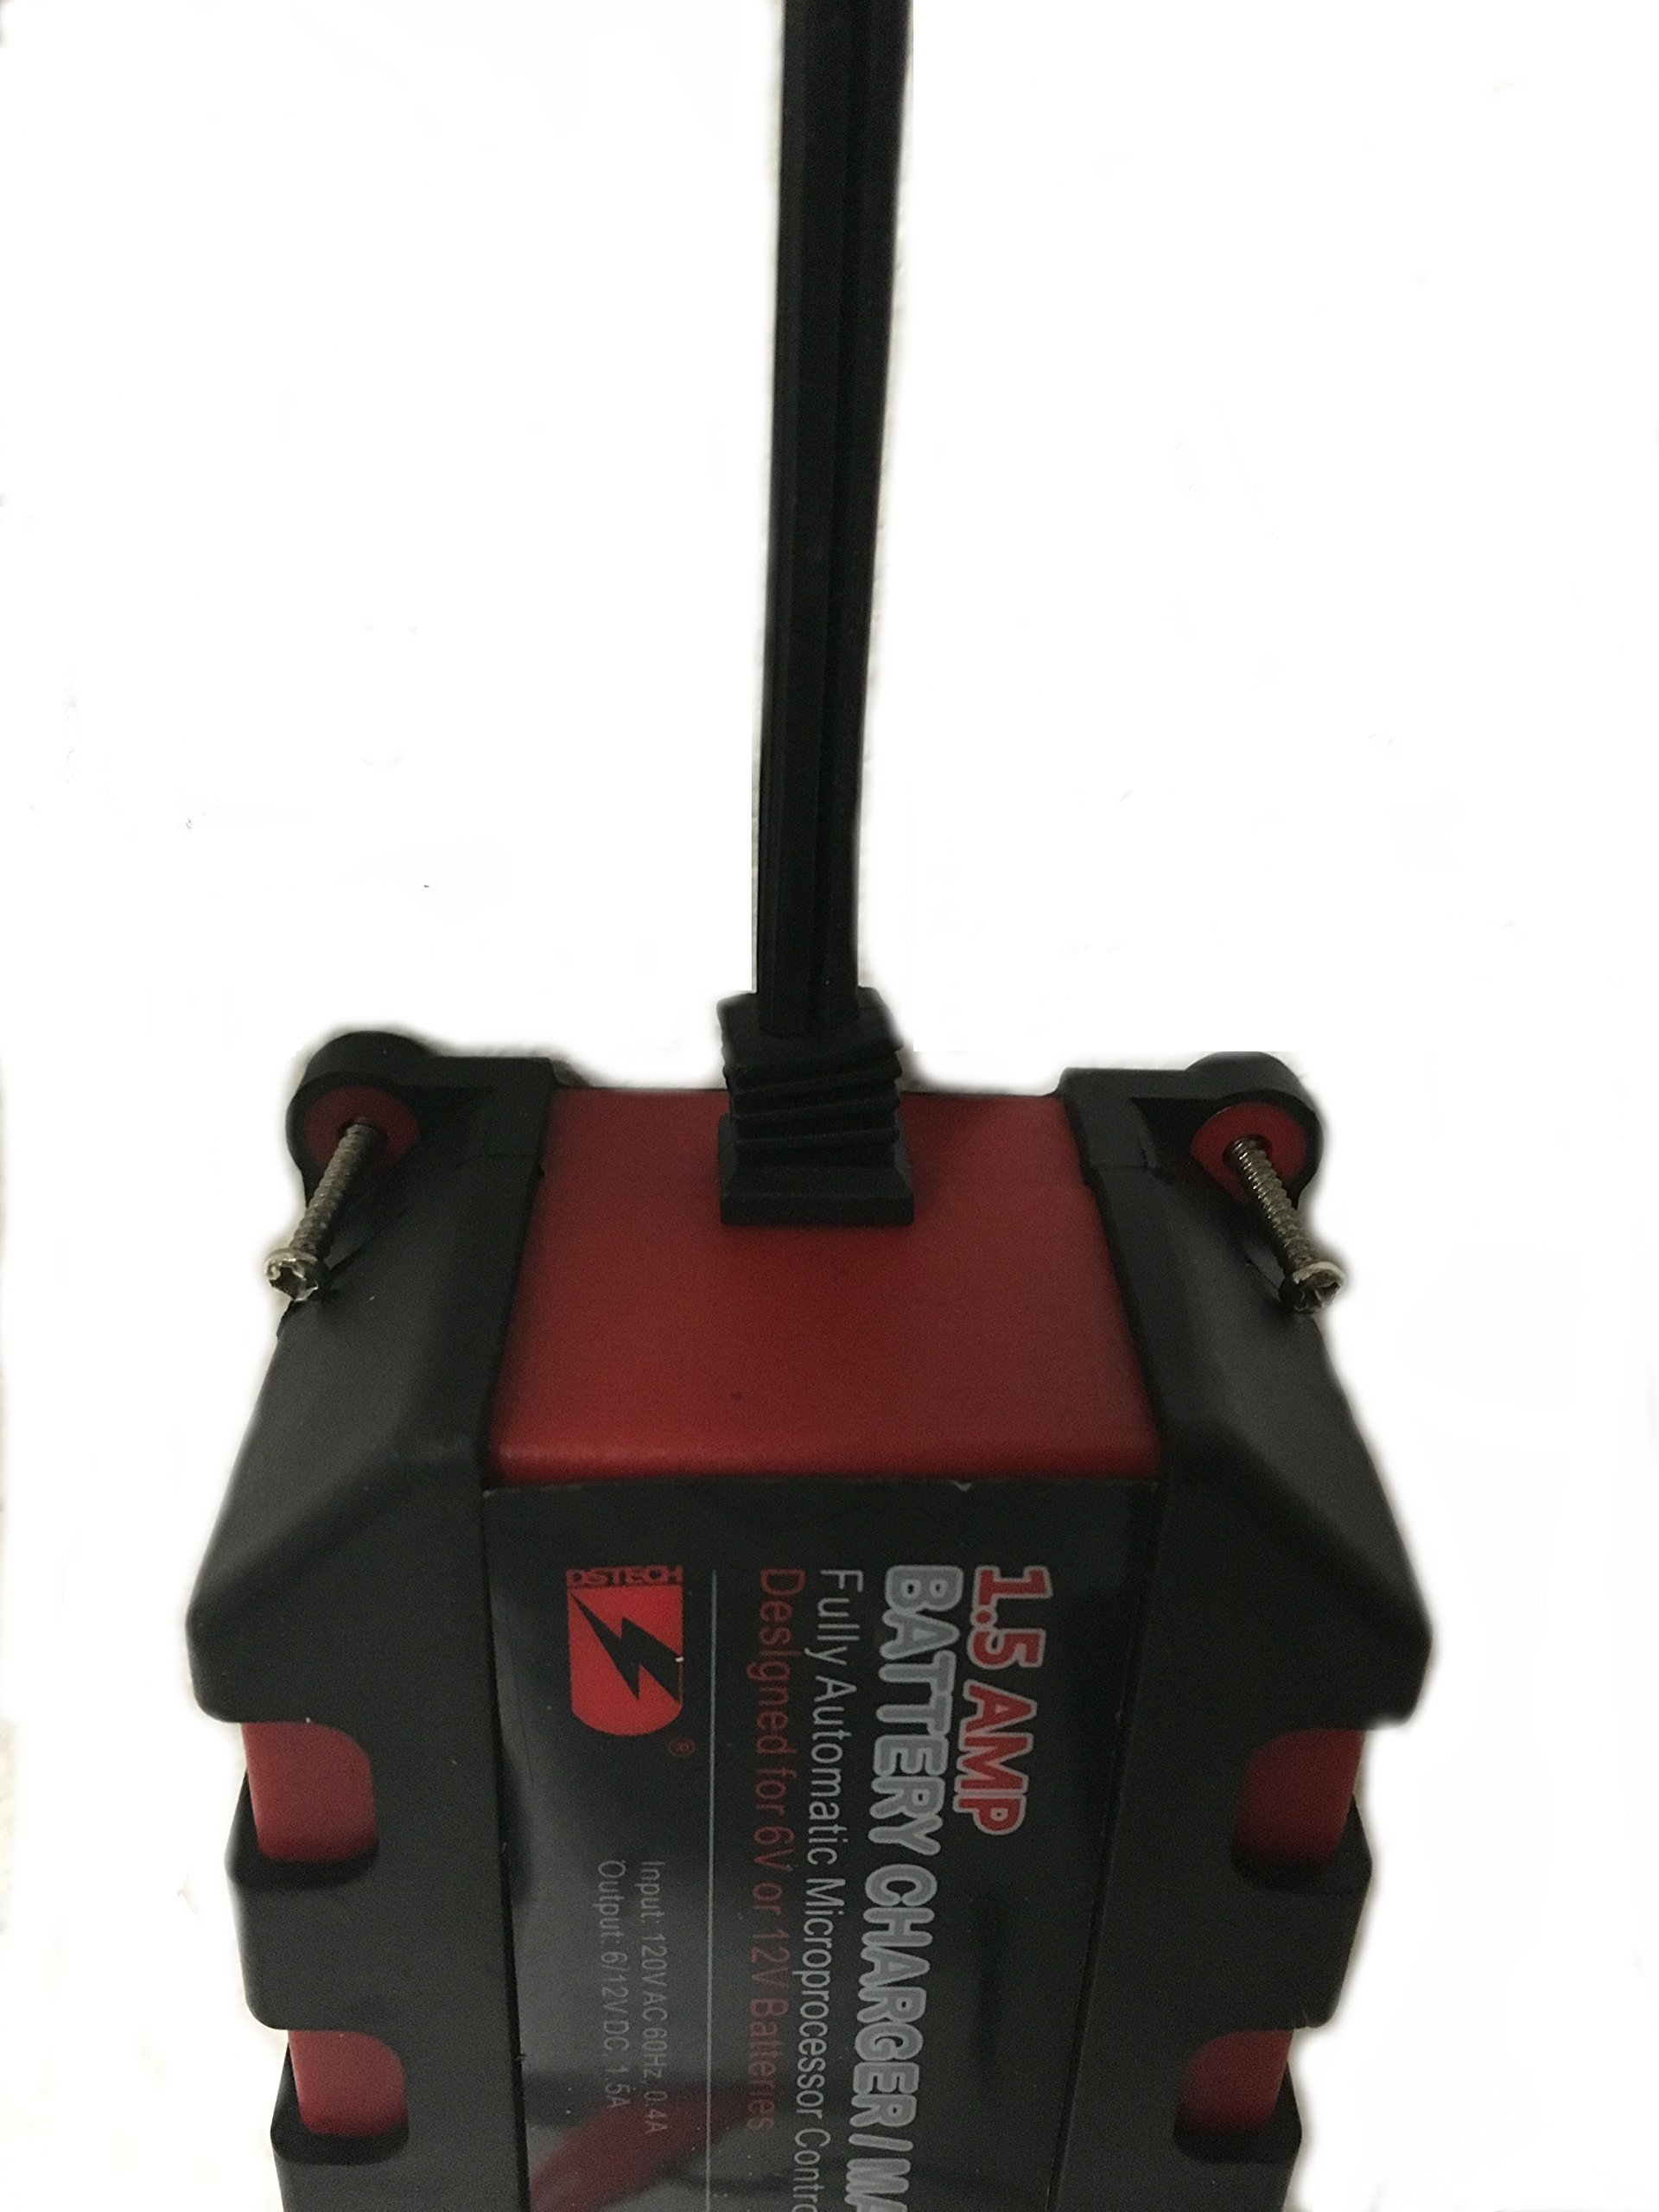 DSTECH BCS-5NS 1.5A Speed Charge Battery MAINTAINER by DSTECH (Image #4)